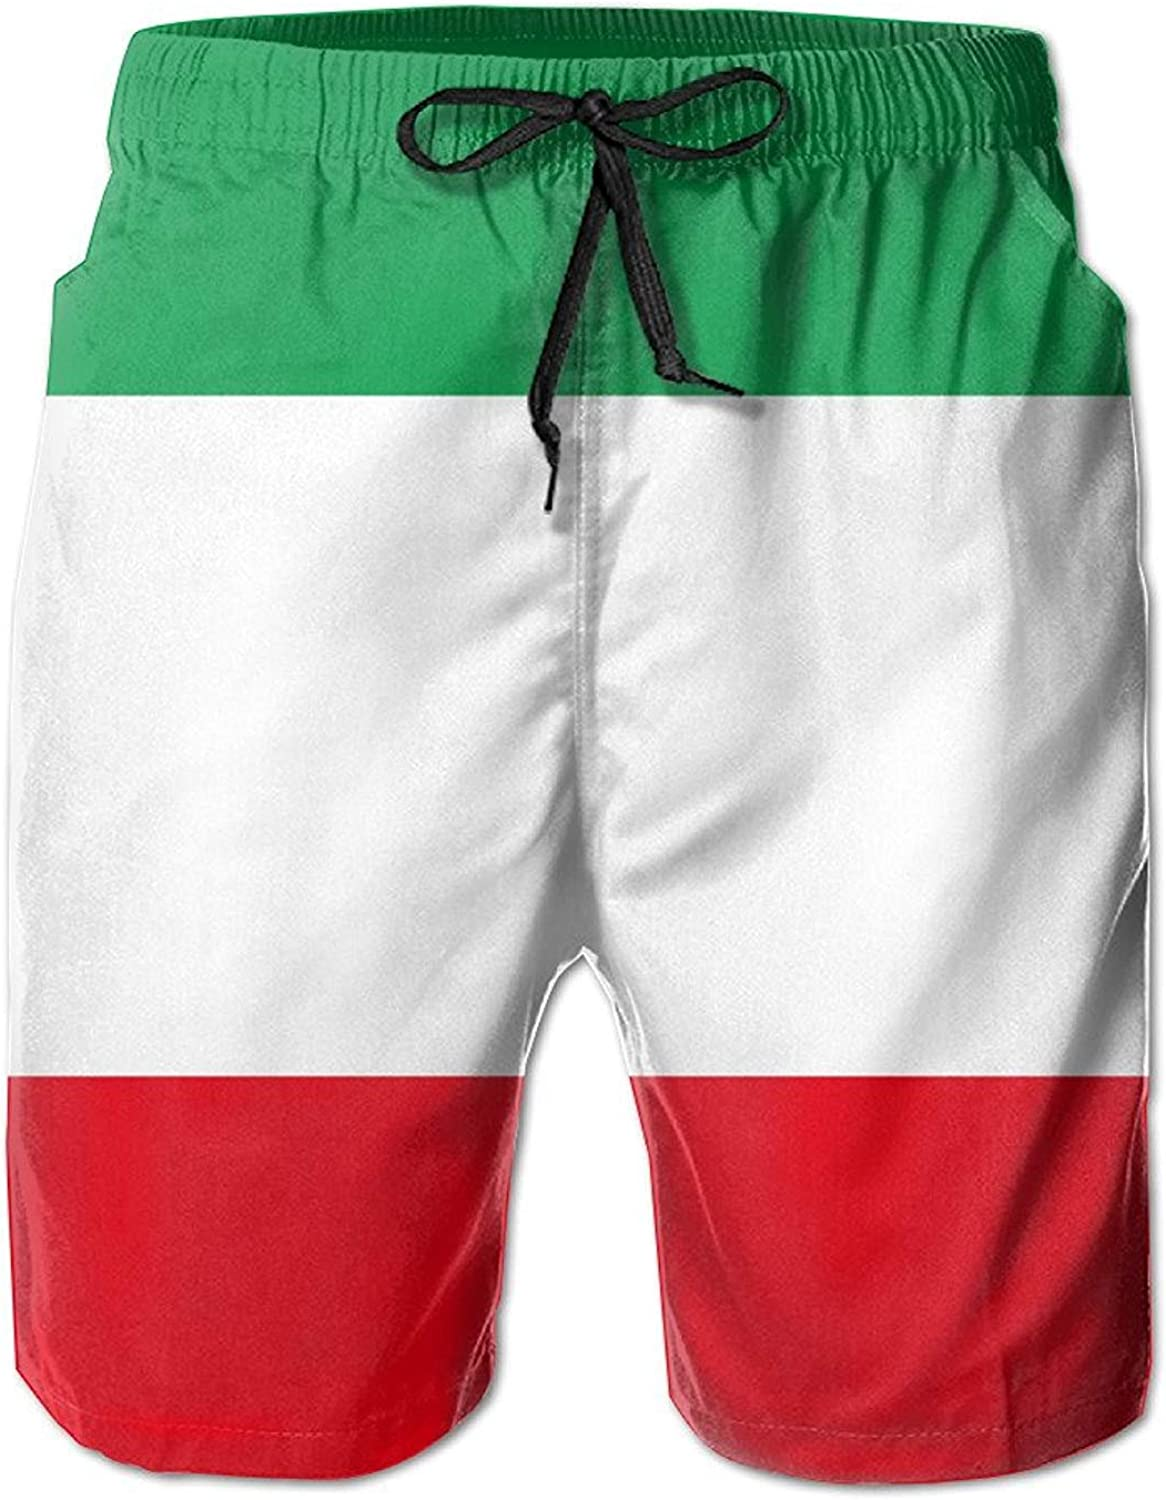 HONGZHESM New Mens Flag of Italy Leisure Ultra-Light Sandy Beach Pants Board Shorts with Telescopic Tape Large